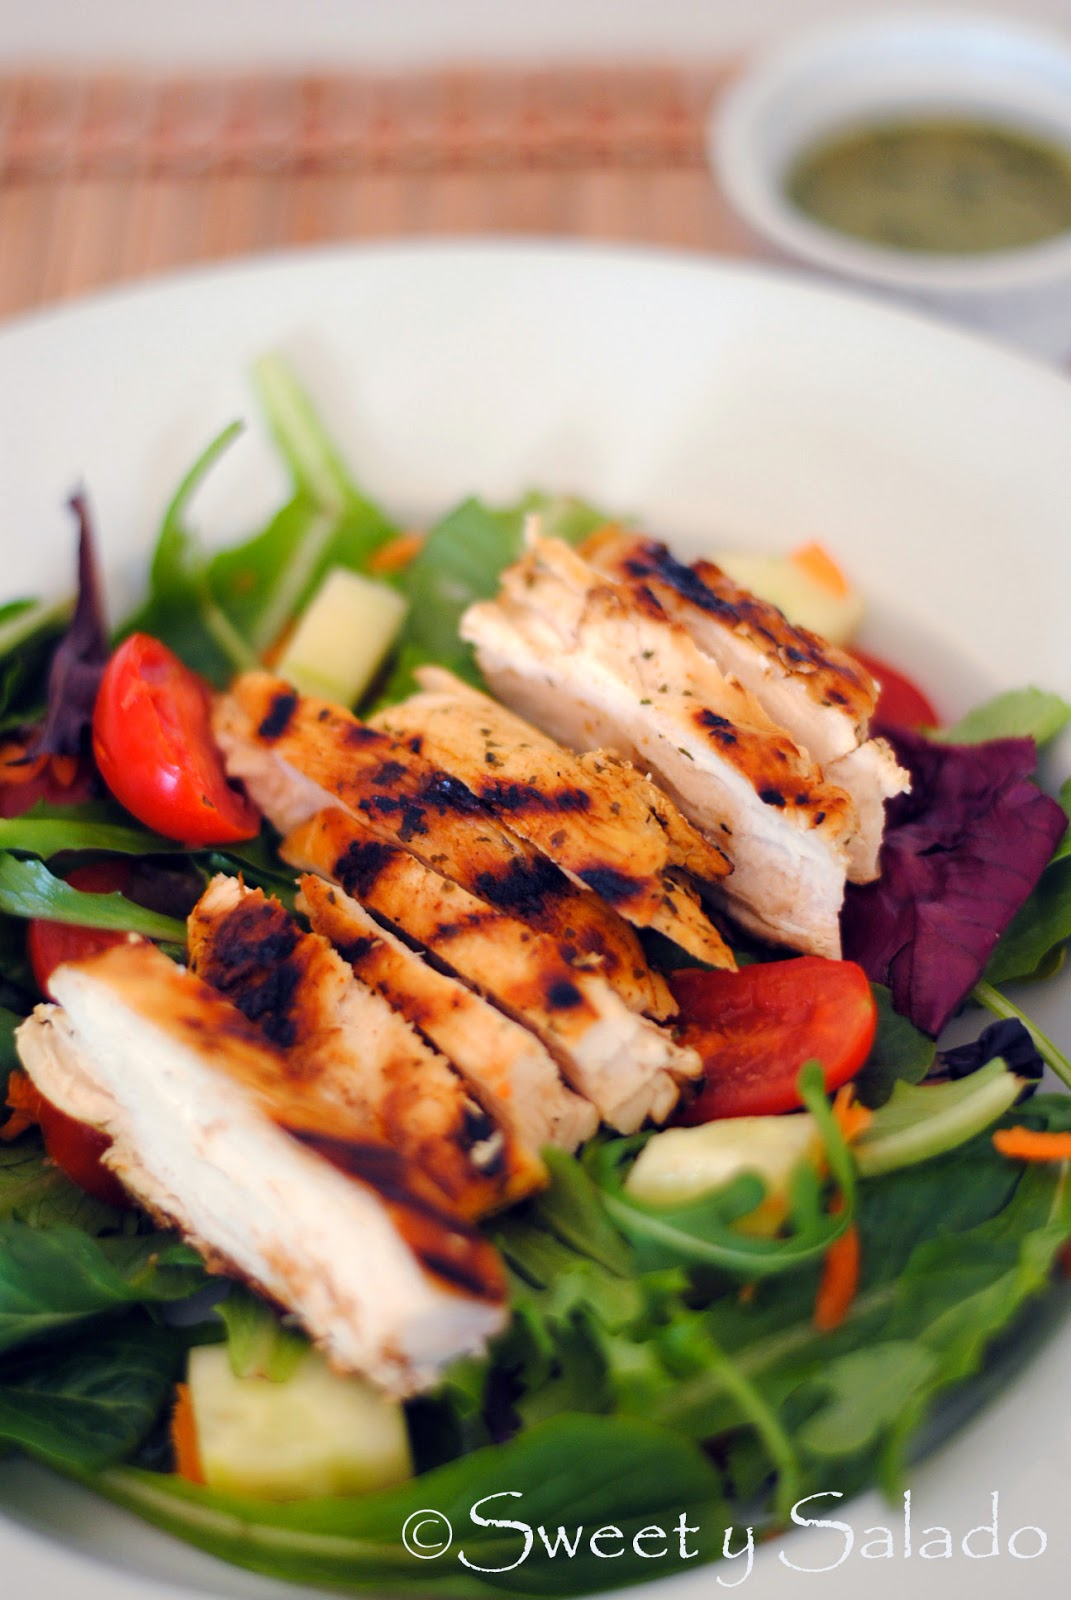 Sweet y Salado: Grilled Chicken Salad With Cilantro Lime Vinaigrette